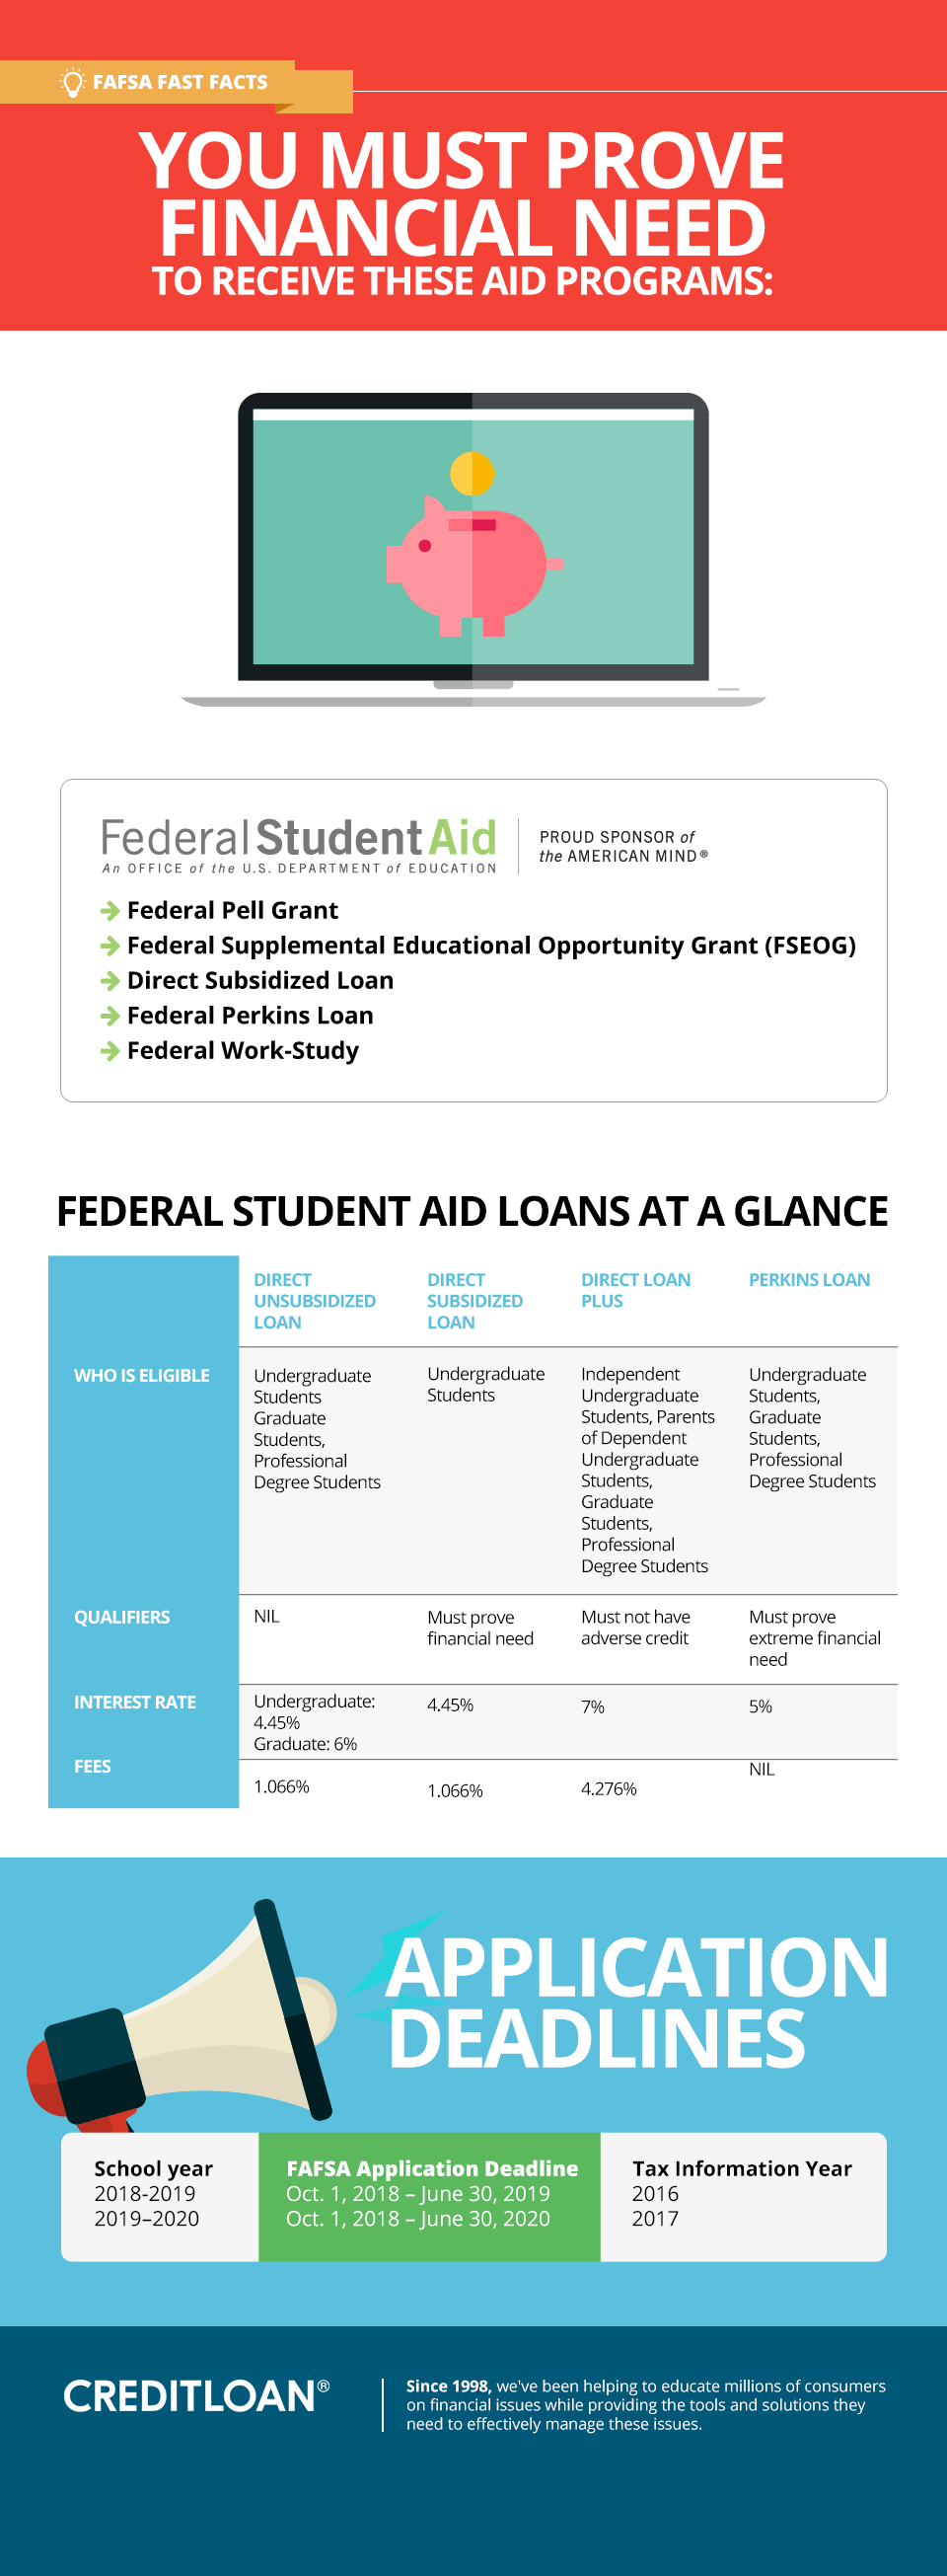 You must prove financial need to qualify for FAFSA